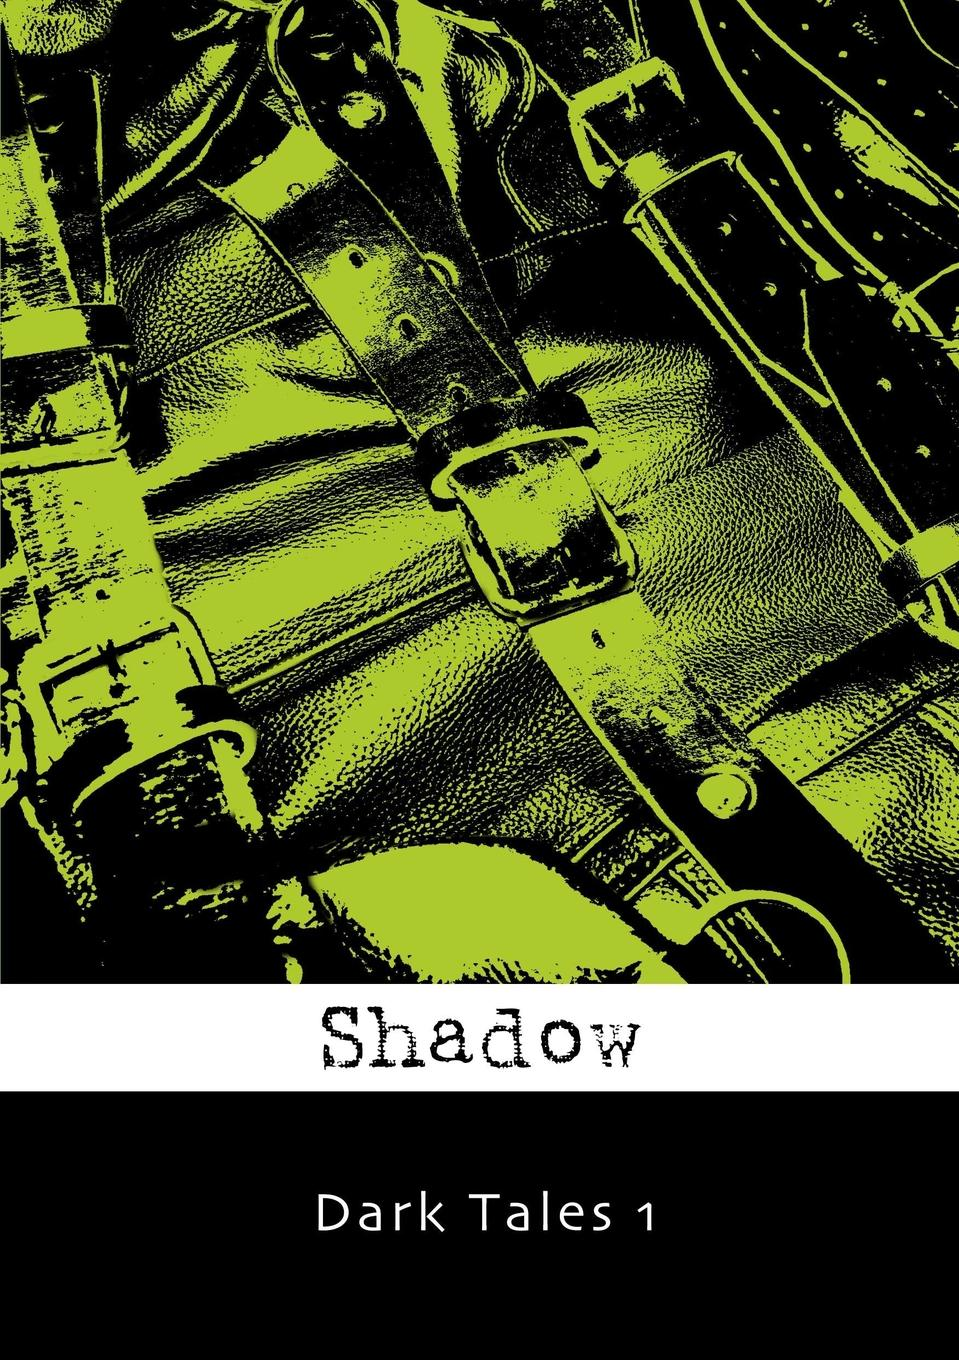 Dark Tales 1 Shadow is the new nickname of an old favorite. Originally known...